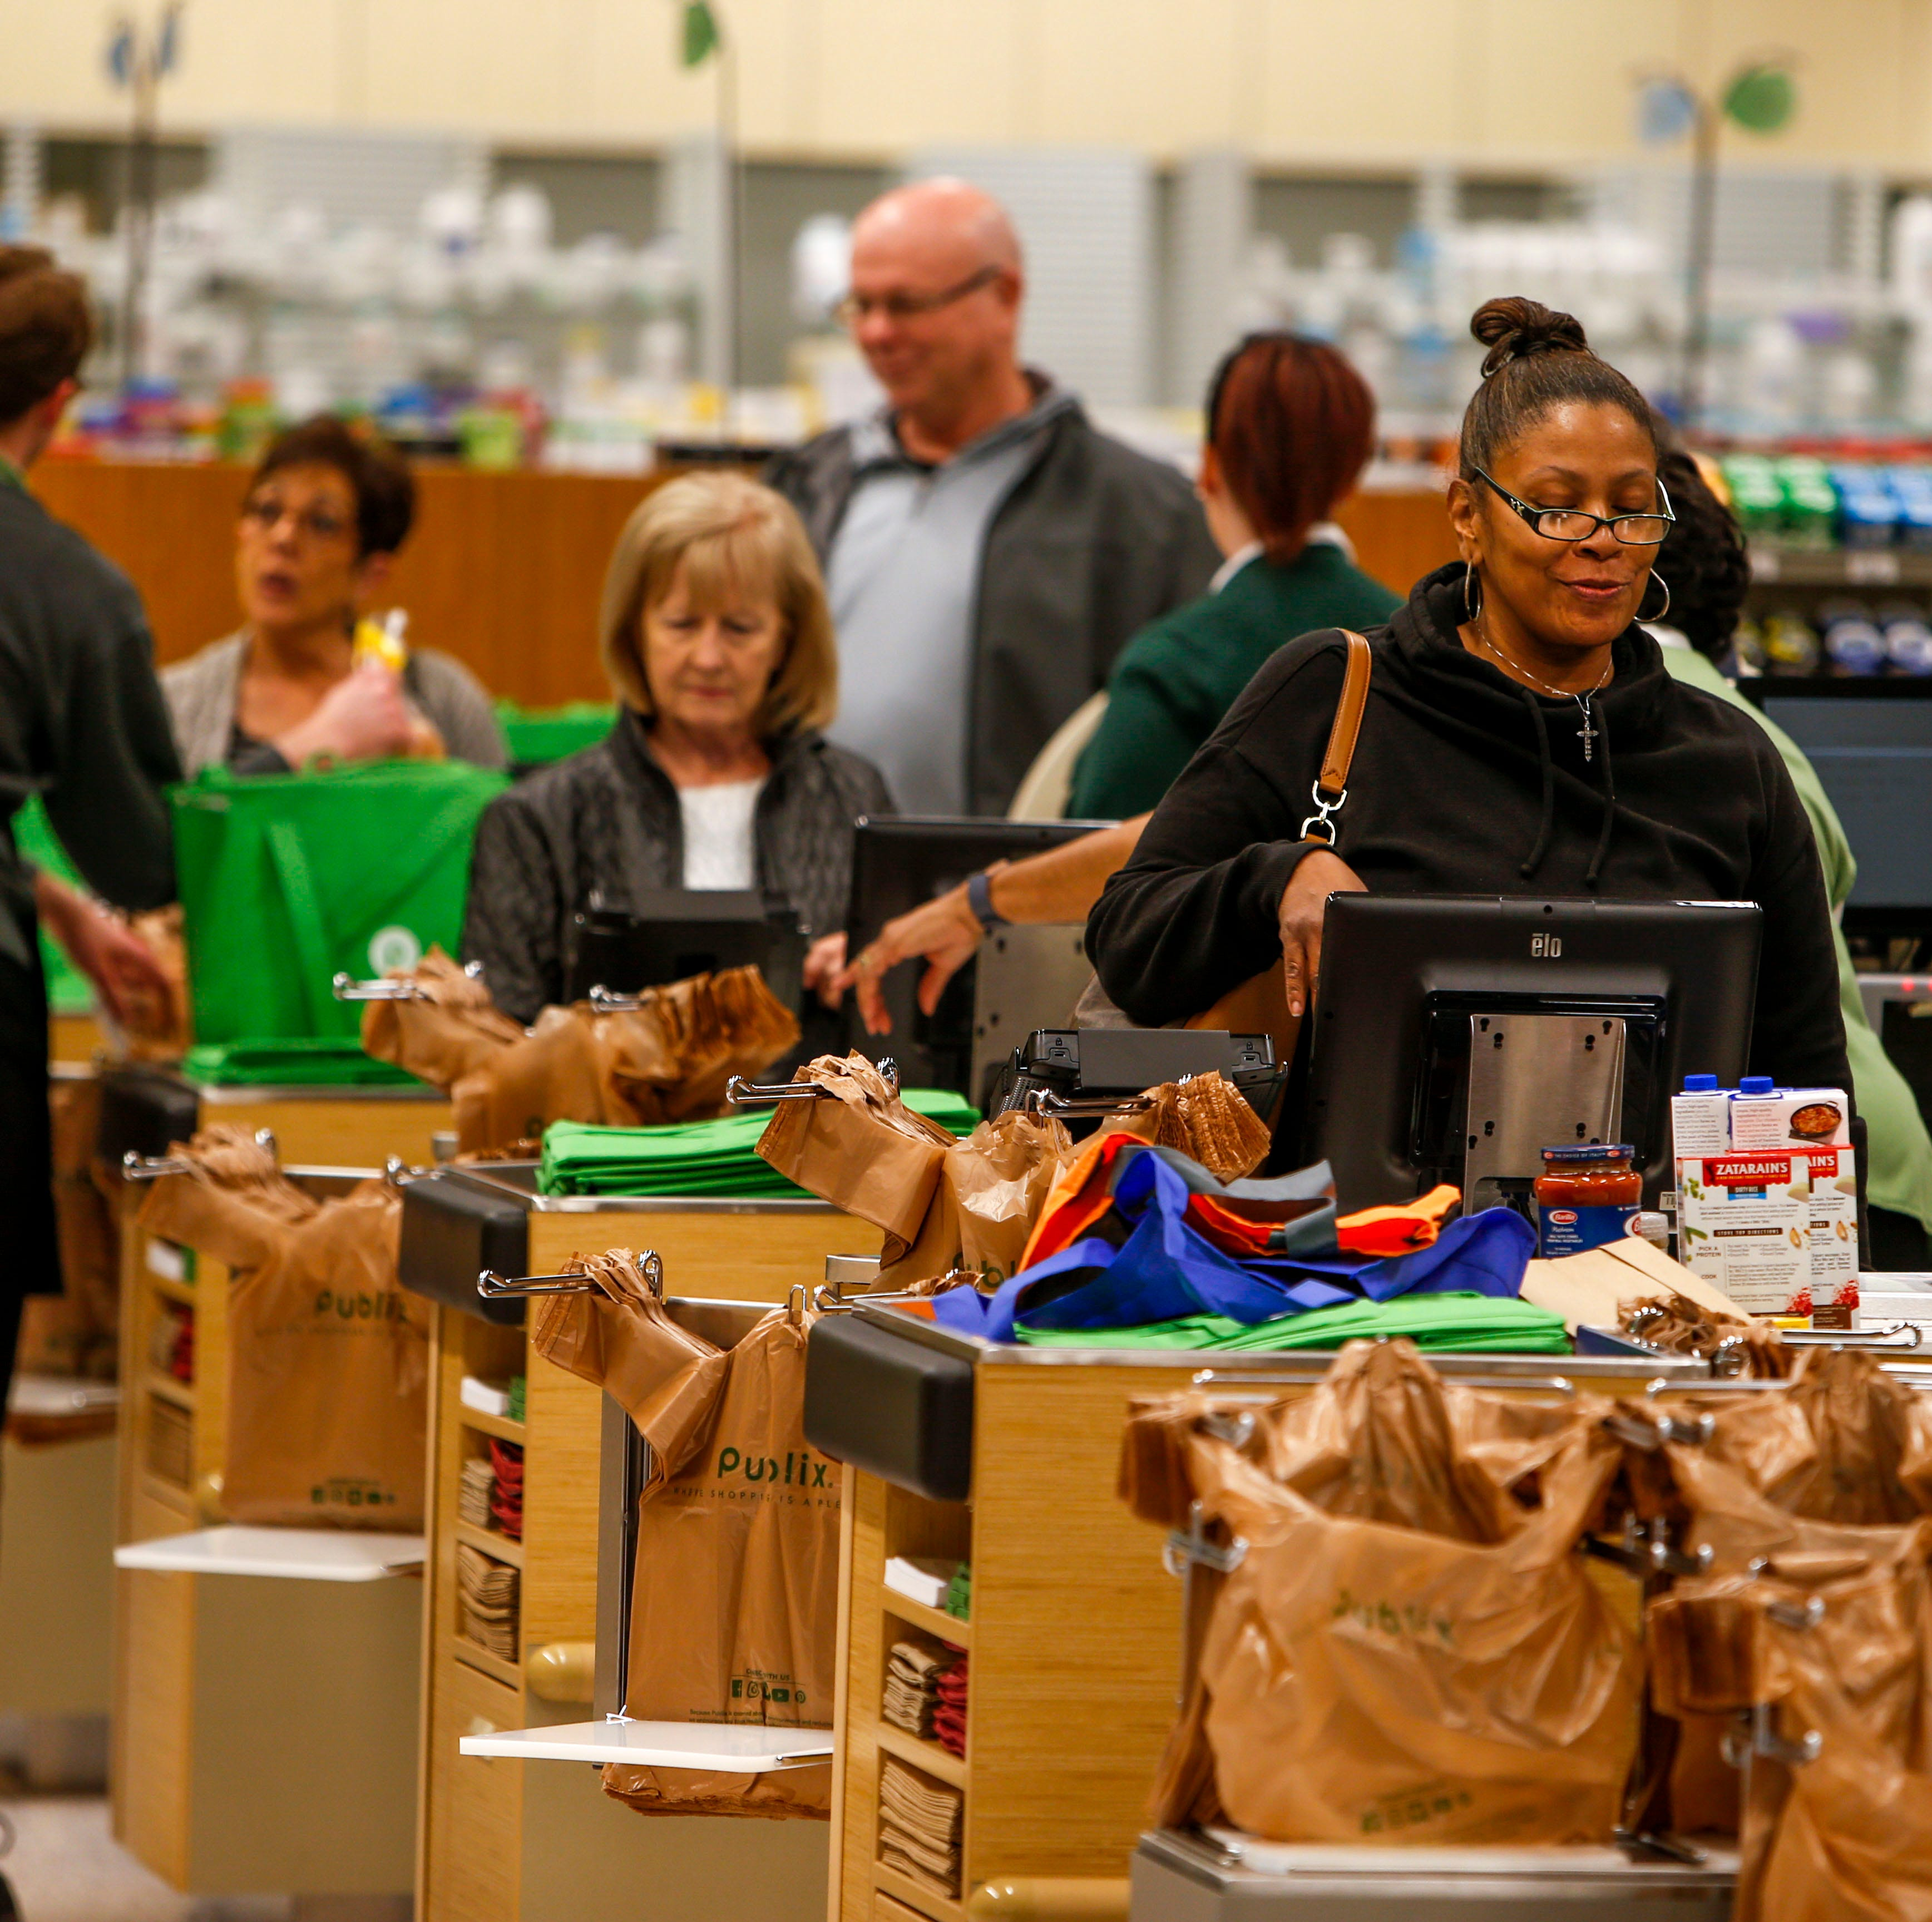 Publix opens to eager crowds in Clarksville's Sango Square